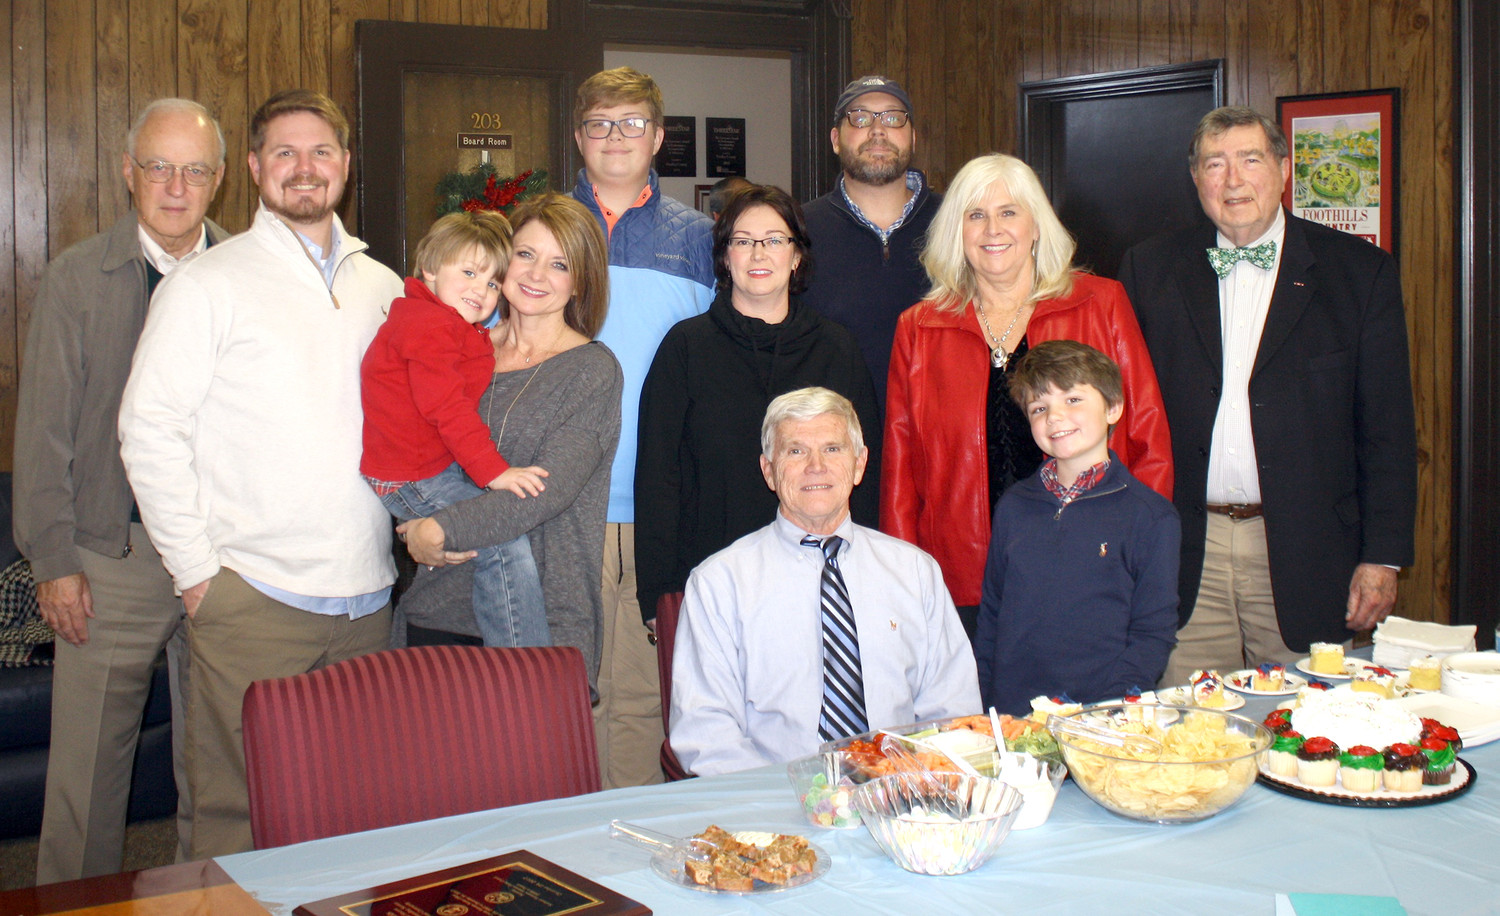 BRADLEY COUNTY Veterans Affairs Officer Joe Davis, seated, was honored with a reception Friday to mark his retirement after 10 years of serving area veterans. Attending the event were, standing from left, Sid Heidel, chairman of the Southeast Tennessee Veterans Home Council; Davis' son, Brad; grandson, Jack; daughter-in-law, Candi; grandson, Nick Nicodemus; daughter, T.J. Nicodemus; son-in-law, Pete Nicodemus; Davis' wife, Judy; grandson, Zane; and the director of the Veterans Affairs Office, Larry McDaris.